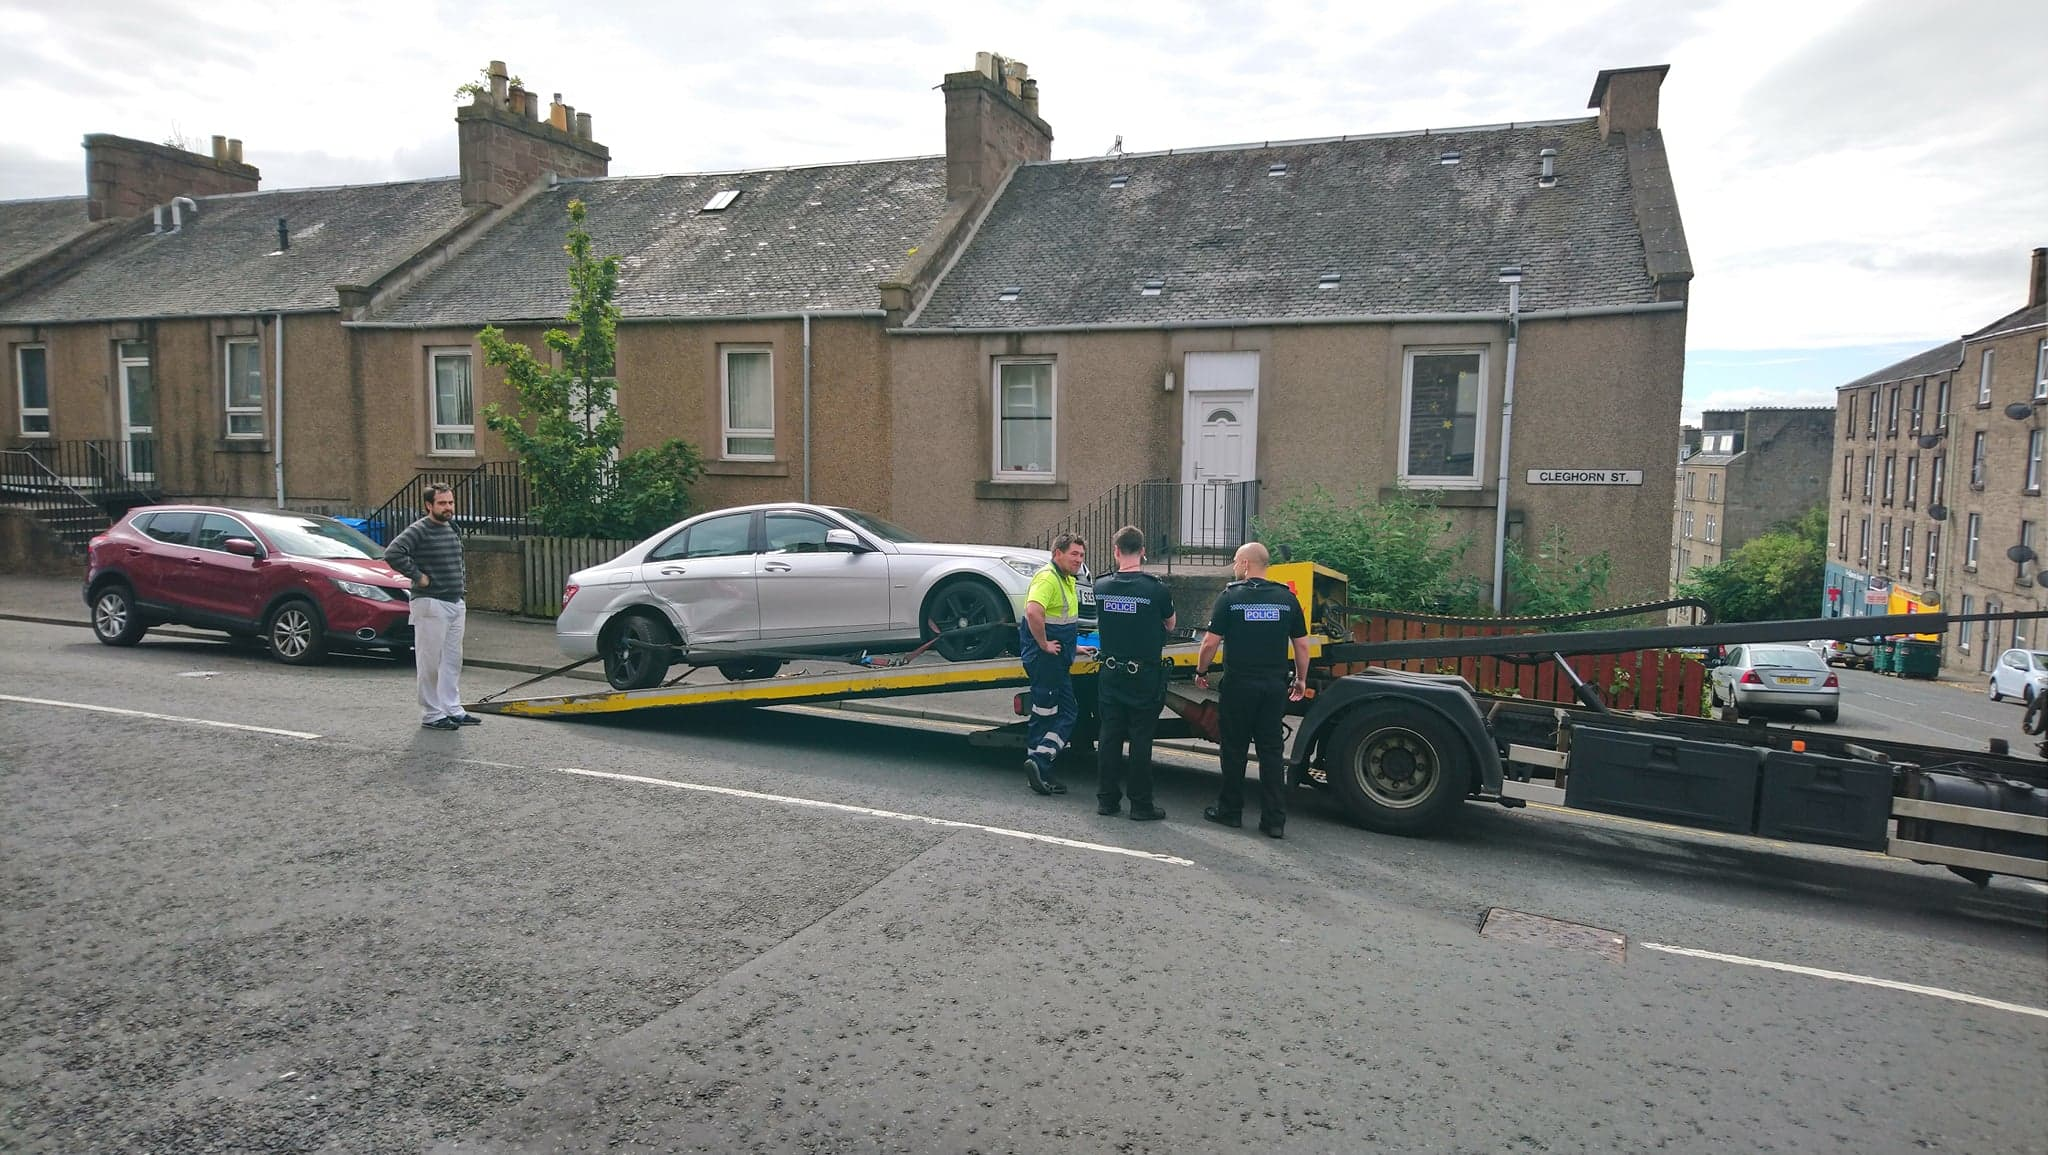 One of the cars being removed in Cleghorn Street.